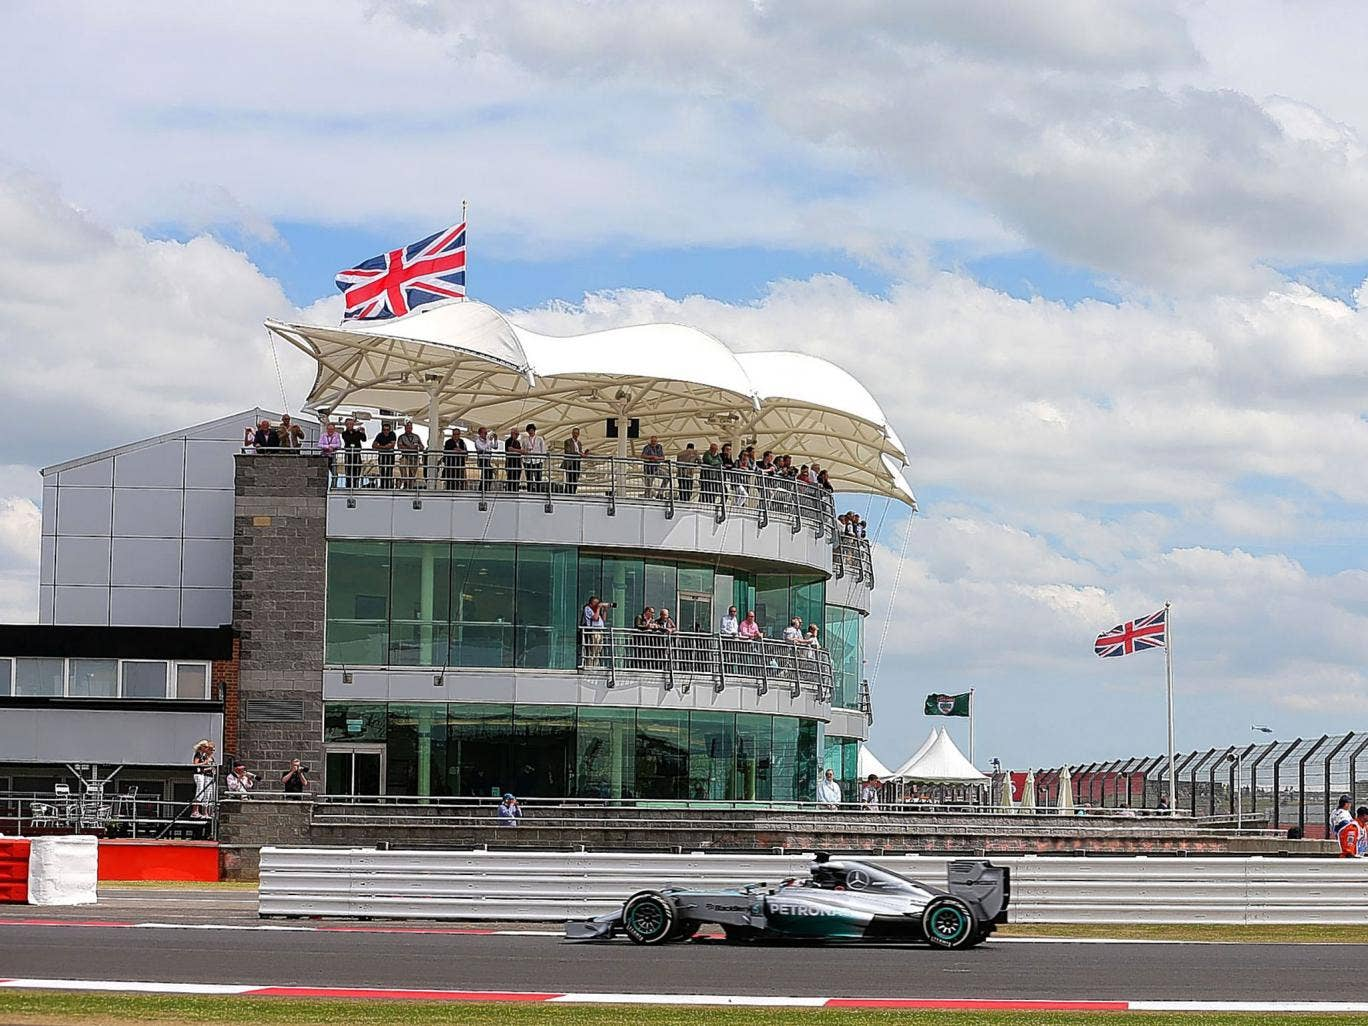 Lewis Hamilton set the fastest time during practice at Silverstone yesterday, although he later suffered engine failure